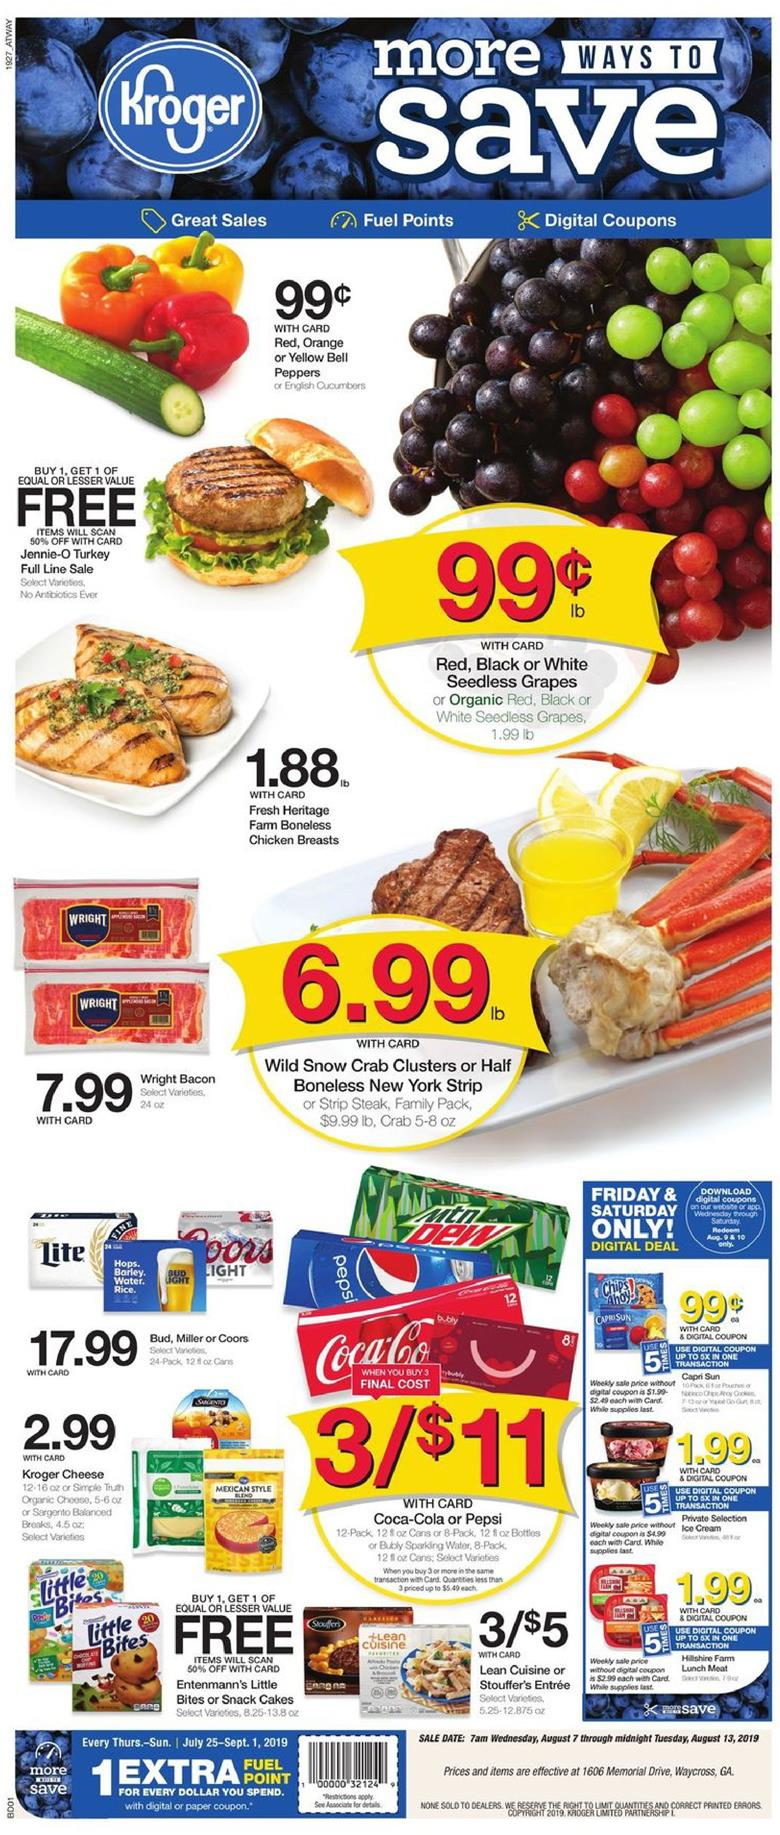 Kroger Weekly Ad Aug 7 - 13, 2019